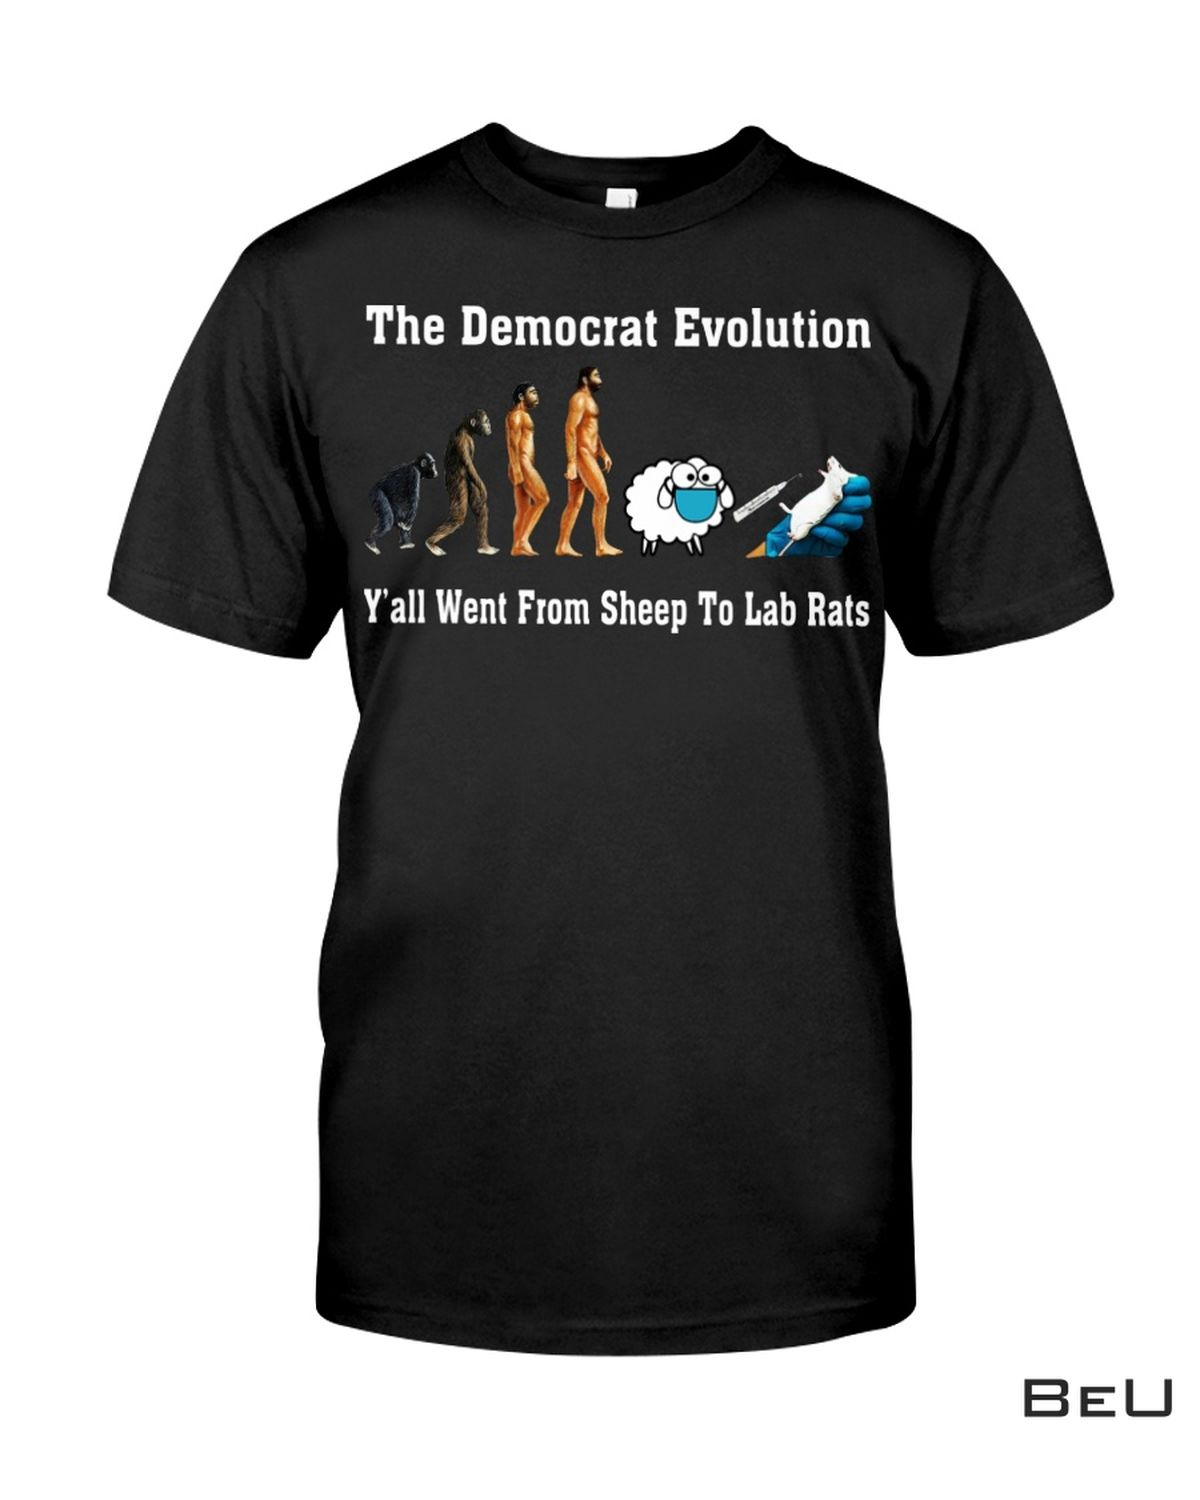 The Democrat Evaluation Shirt From Sheep To Labs Rat Shirt, hoodie, tank top